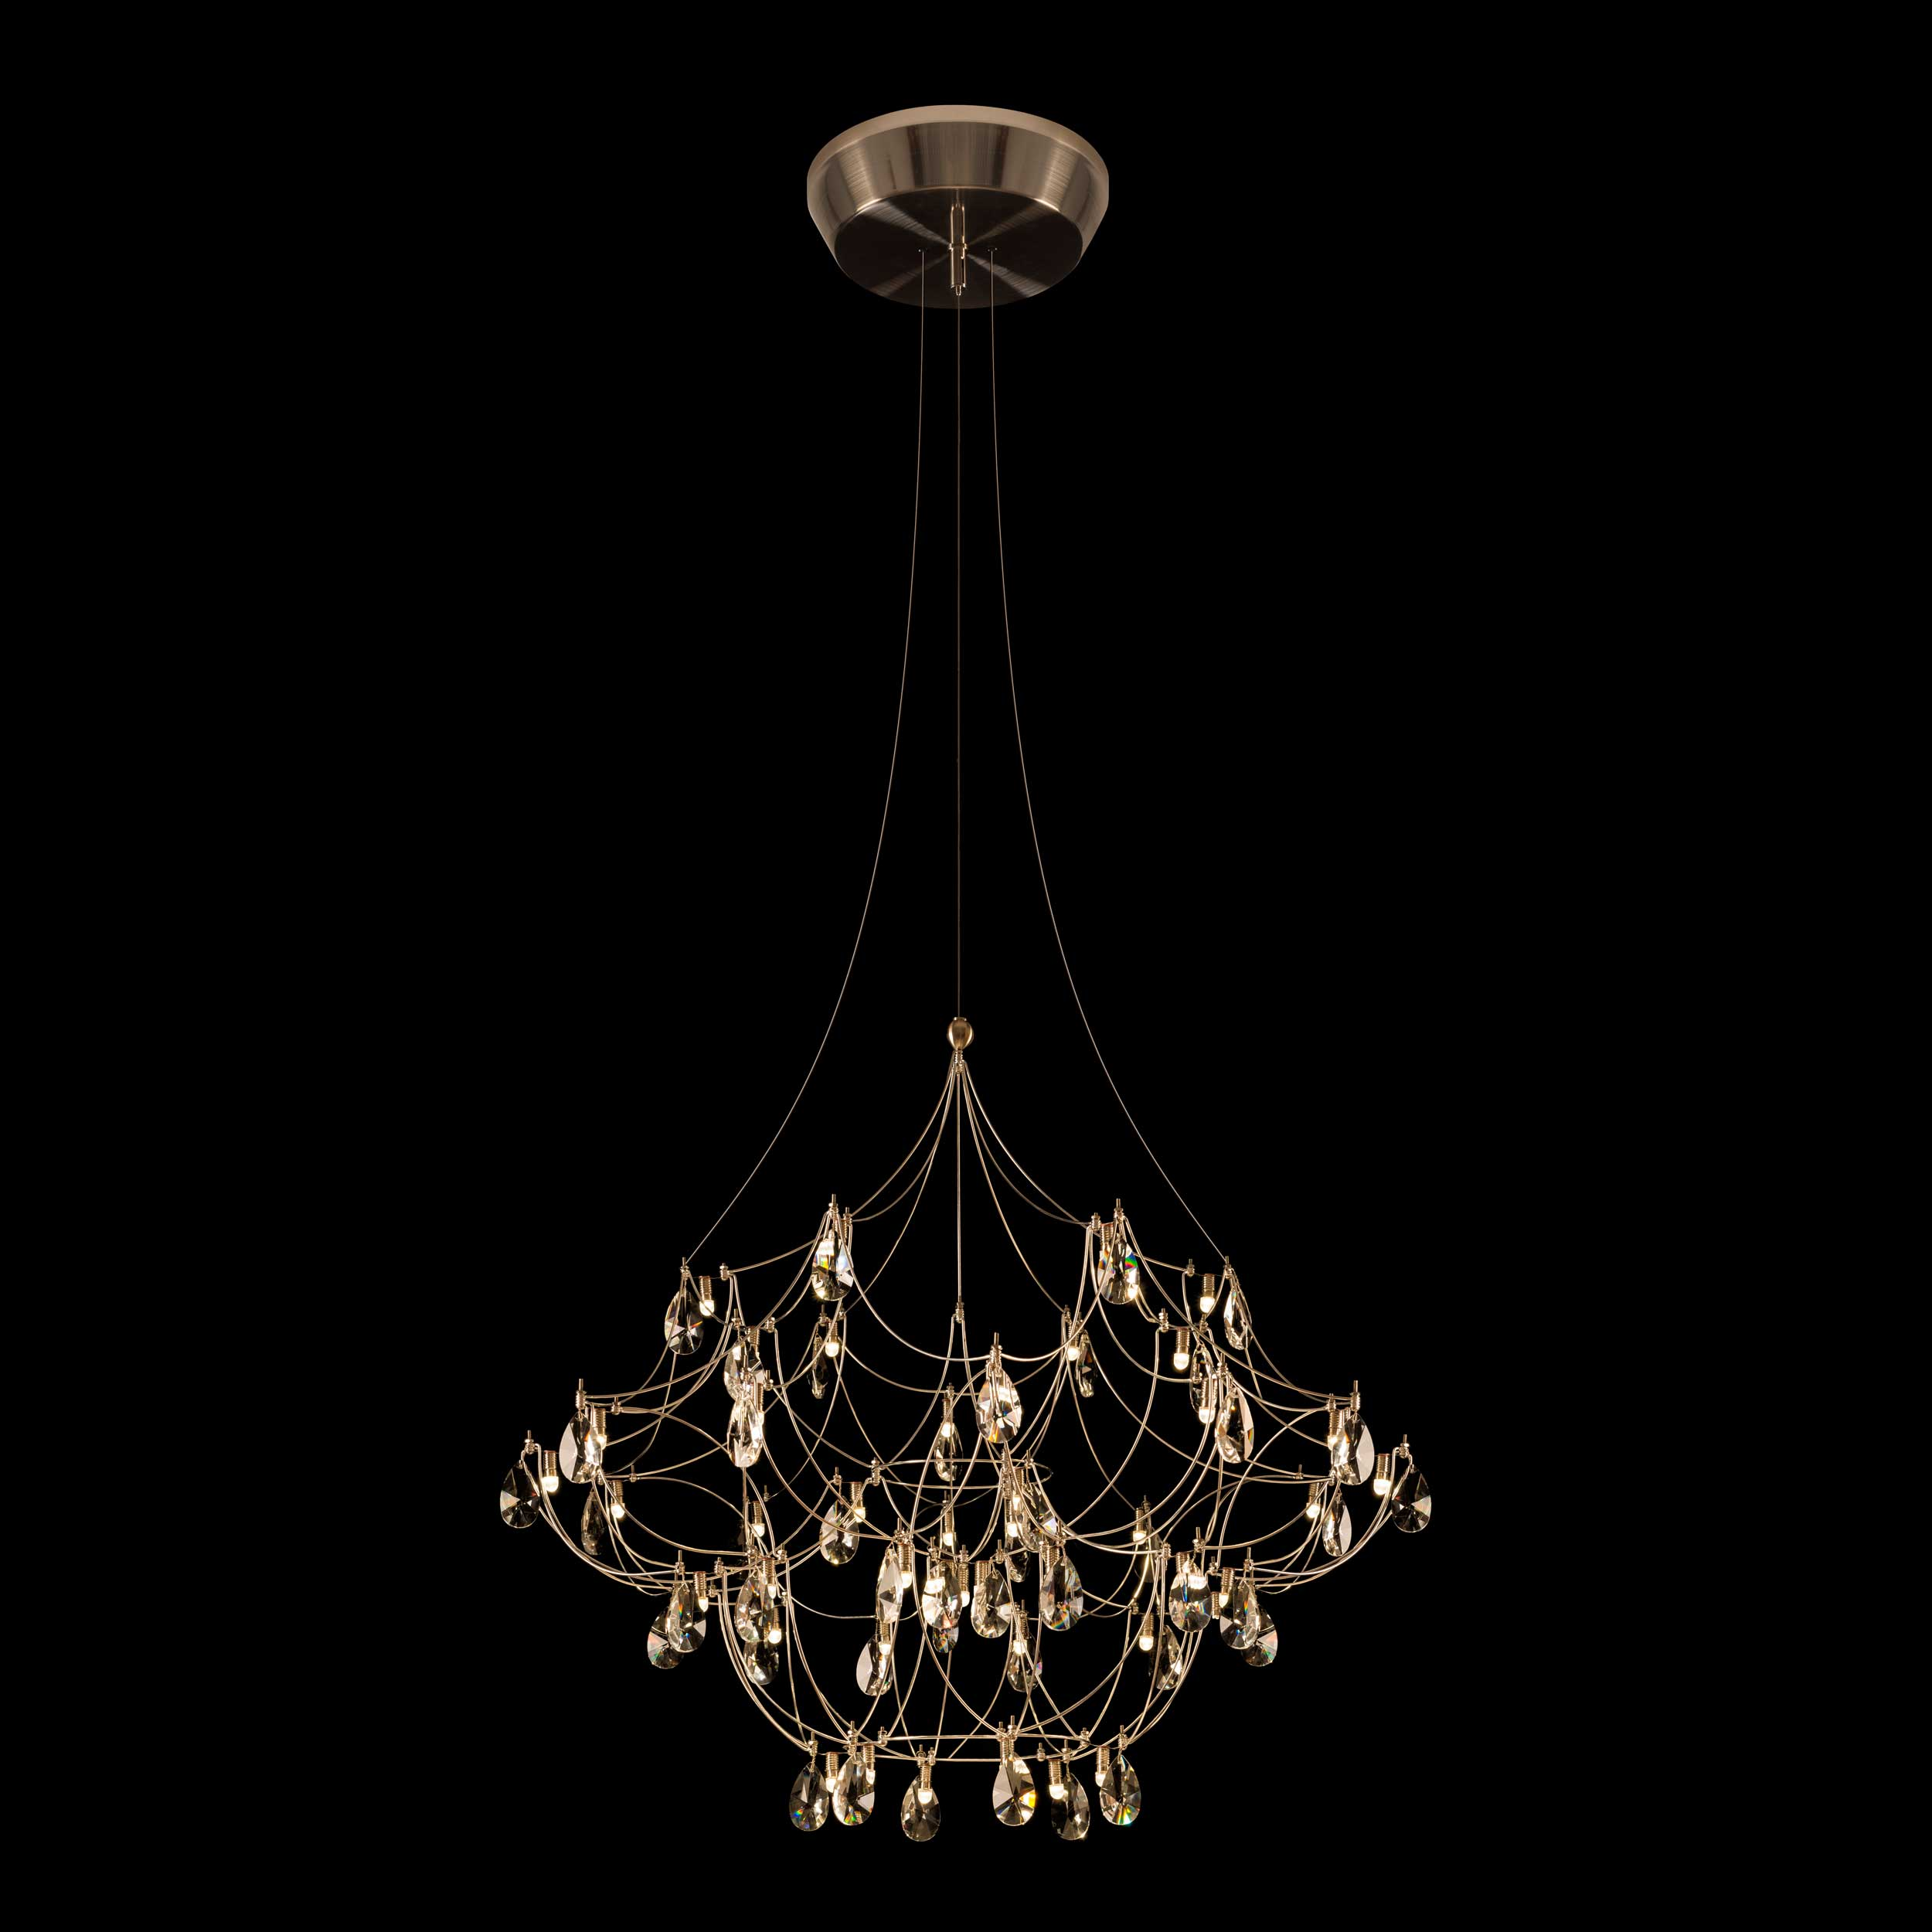 Galaxy Lighting Crystal Galaxy Chandelier By Pureedge Lighting Cryga24 12 L1 Sn